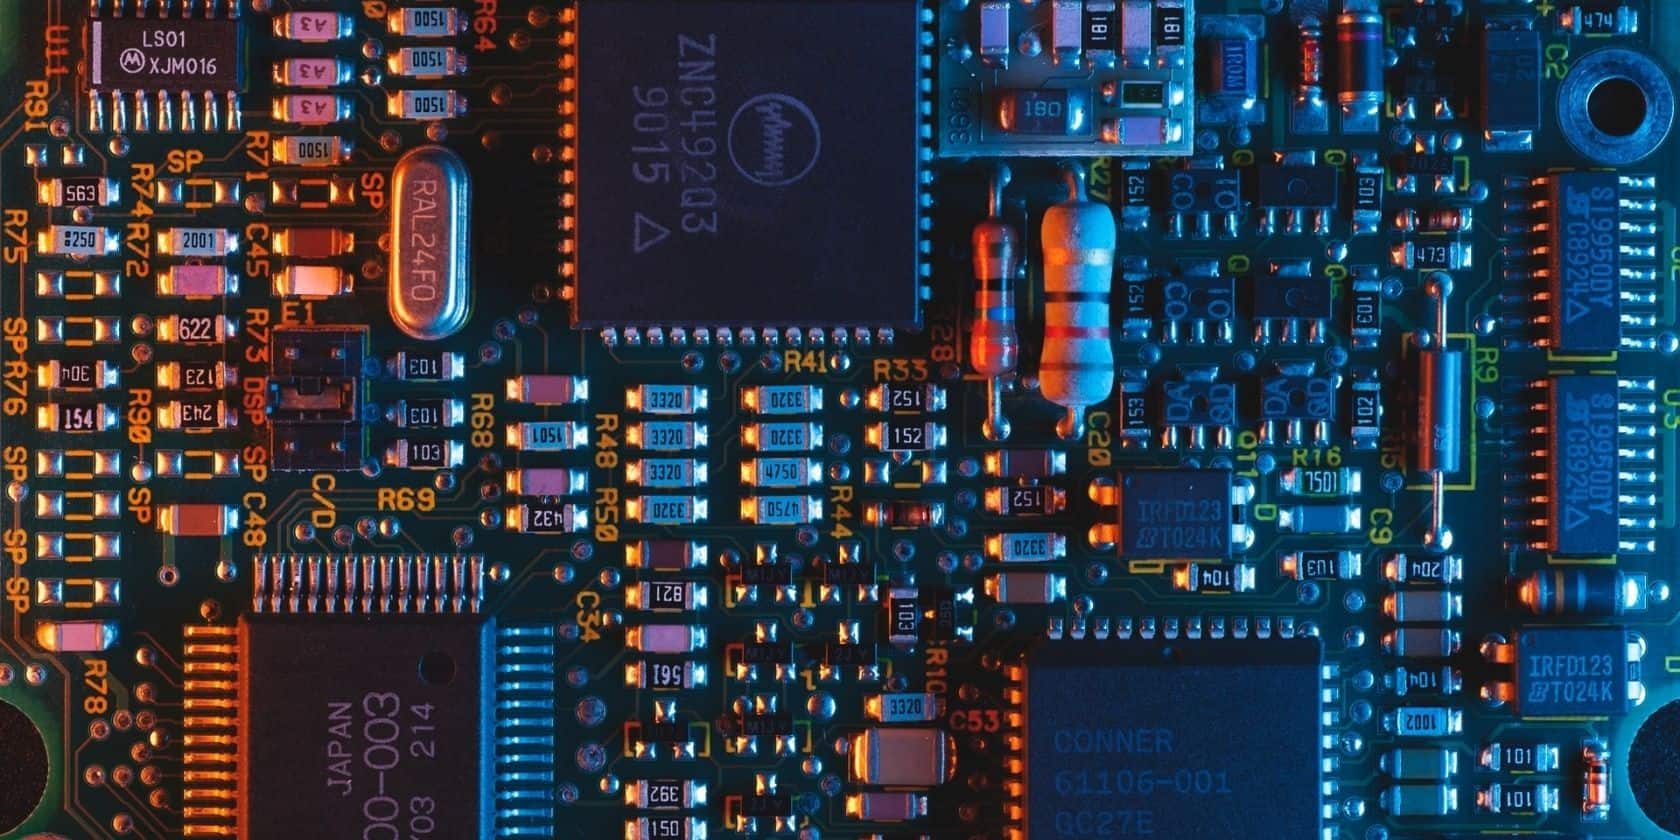 How to Tell What Motherboard You Have